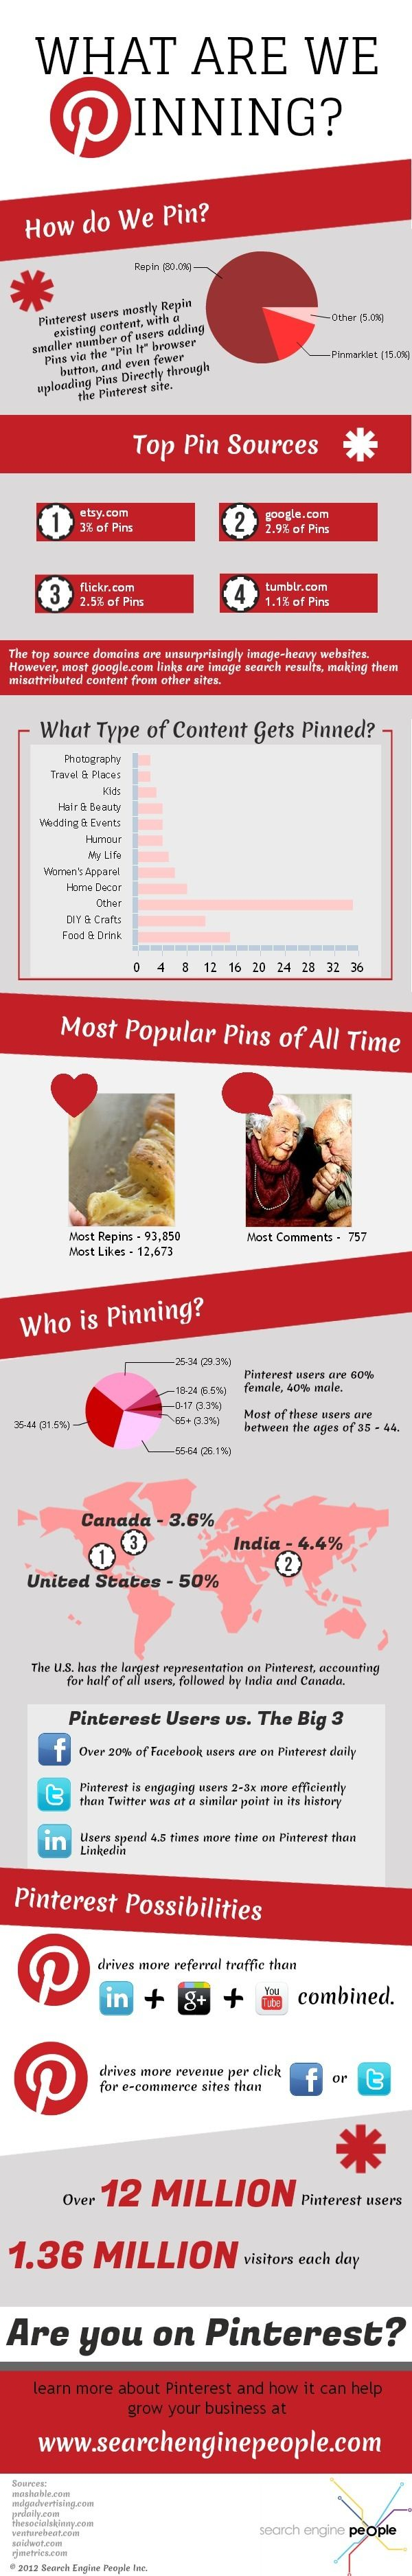 "As the ""It"" social network of 2012, Pinterest has gained over 10 million users in just over 2 years. Major brands are seriously looking to Pinterest to drive more traffic and increase sales.  Did you know: • Pinterest is now the 3rd most popular social network in the U.S. in terms of traffic? (Ex..."